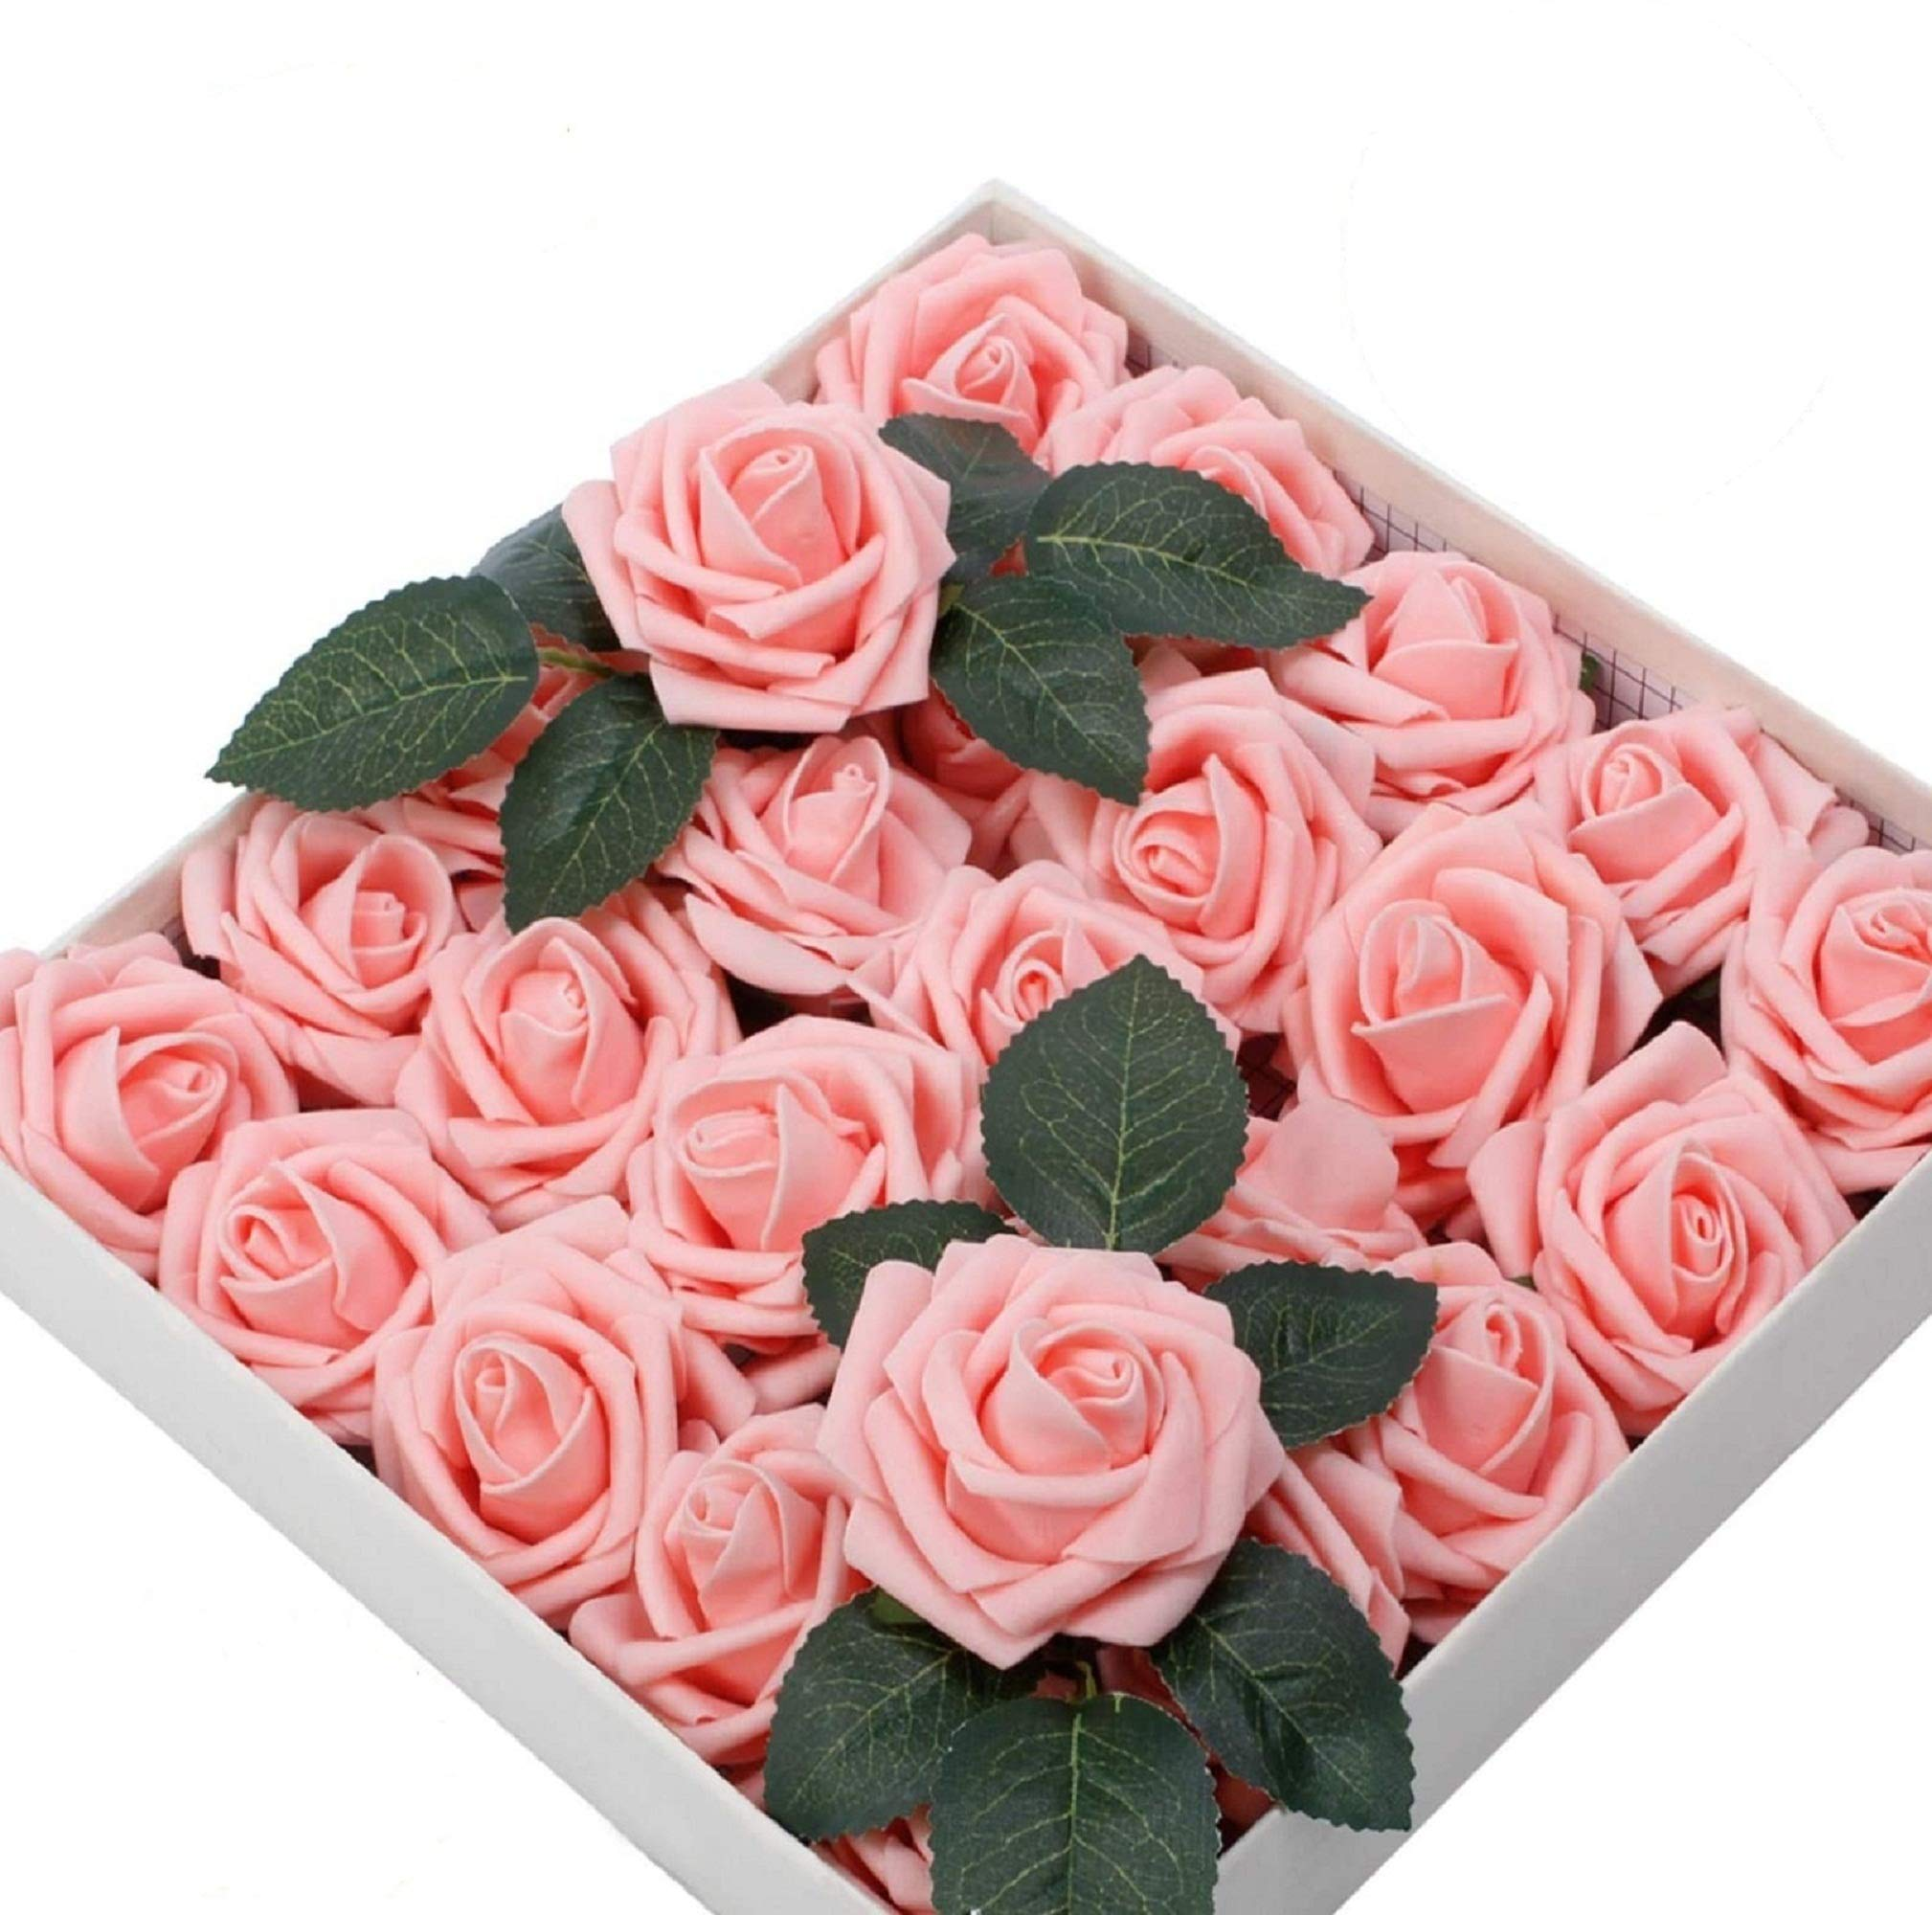 60pcs Artificial Flowers Roses Real Touch Fake Roses for DIY Wedding Bouquets Bridal Shower Party Home Decorations…